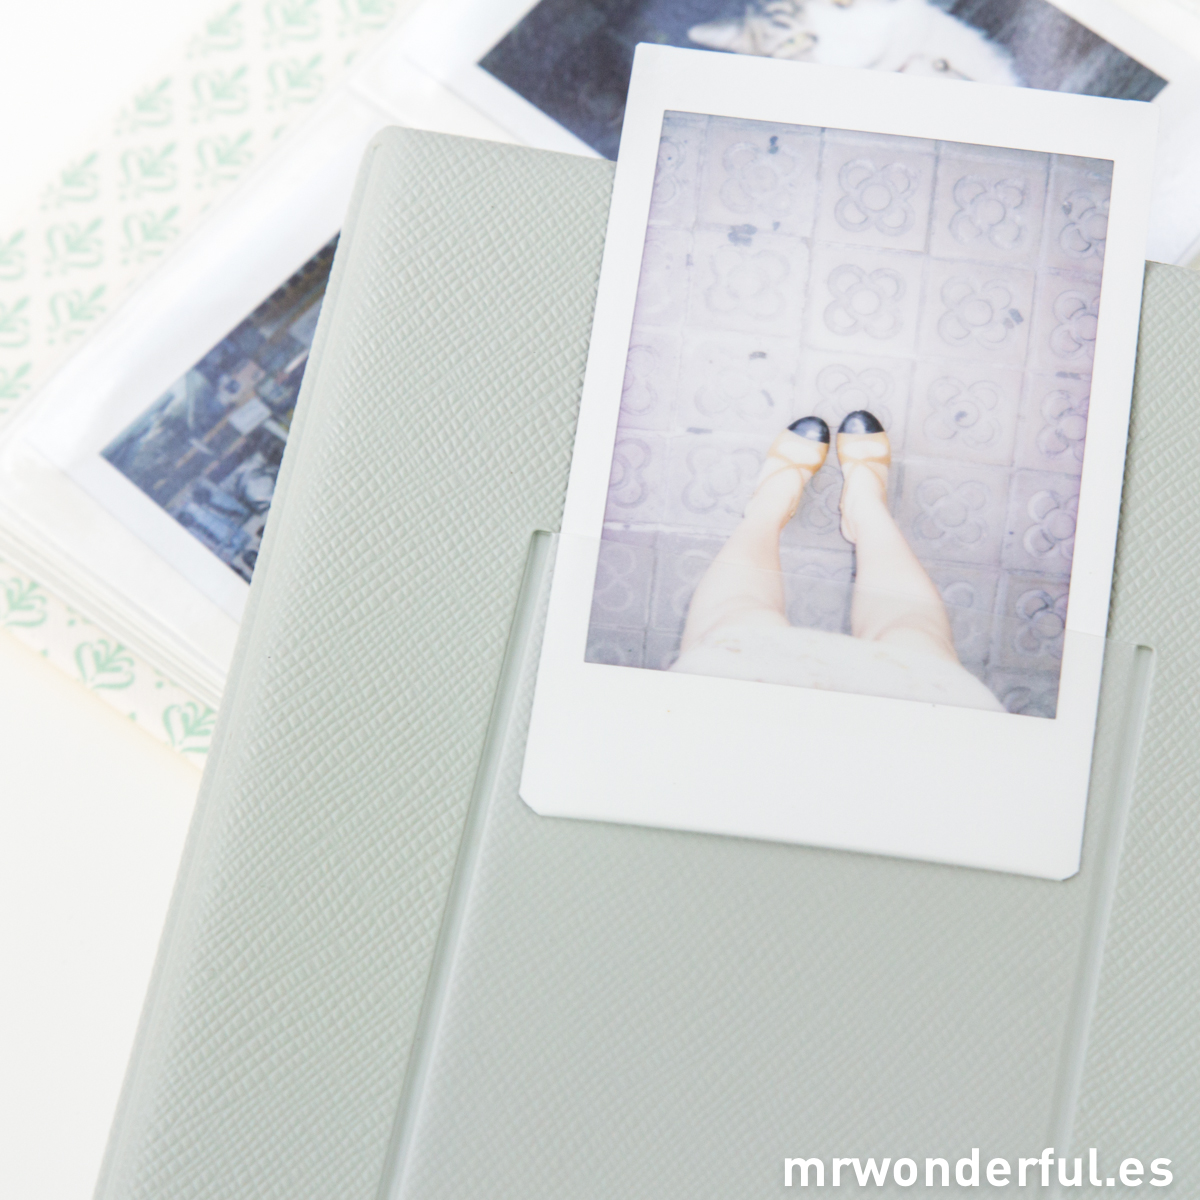 mrwonderful_7800_VINTAGEMINT_album-fotos-polaroid-mini-gris-6